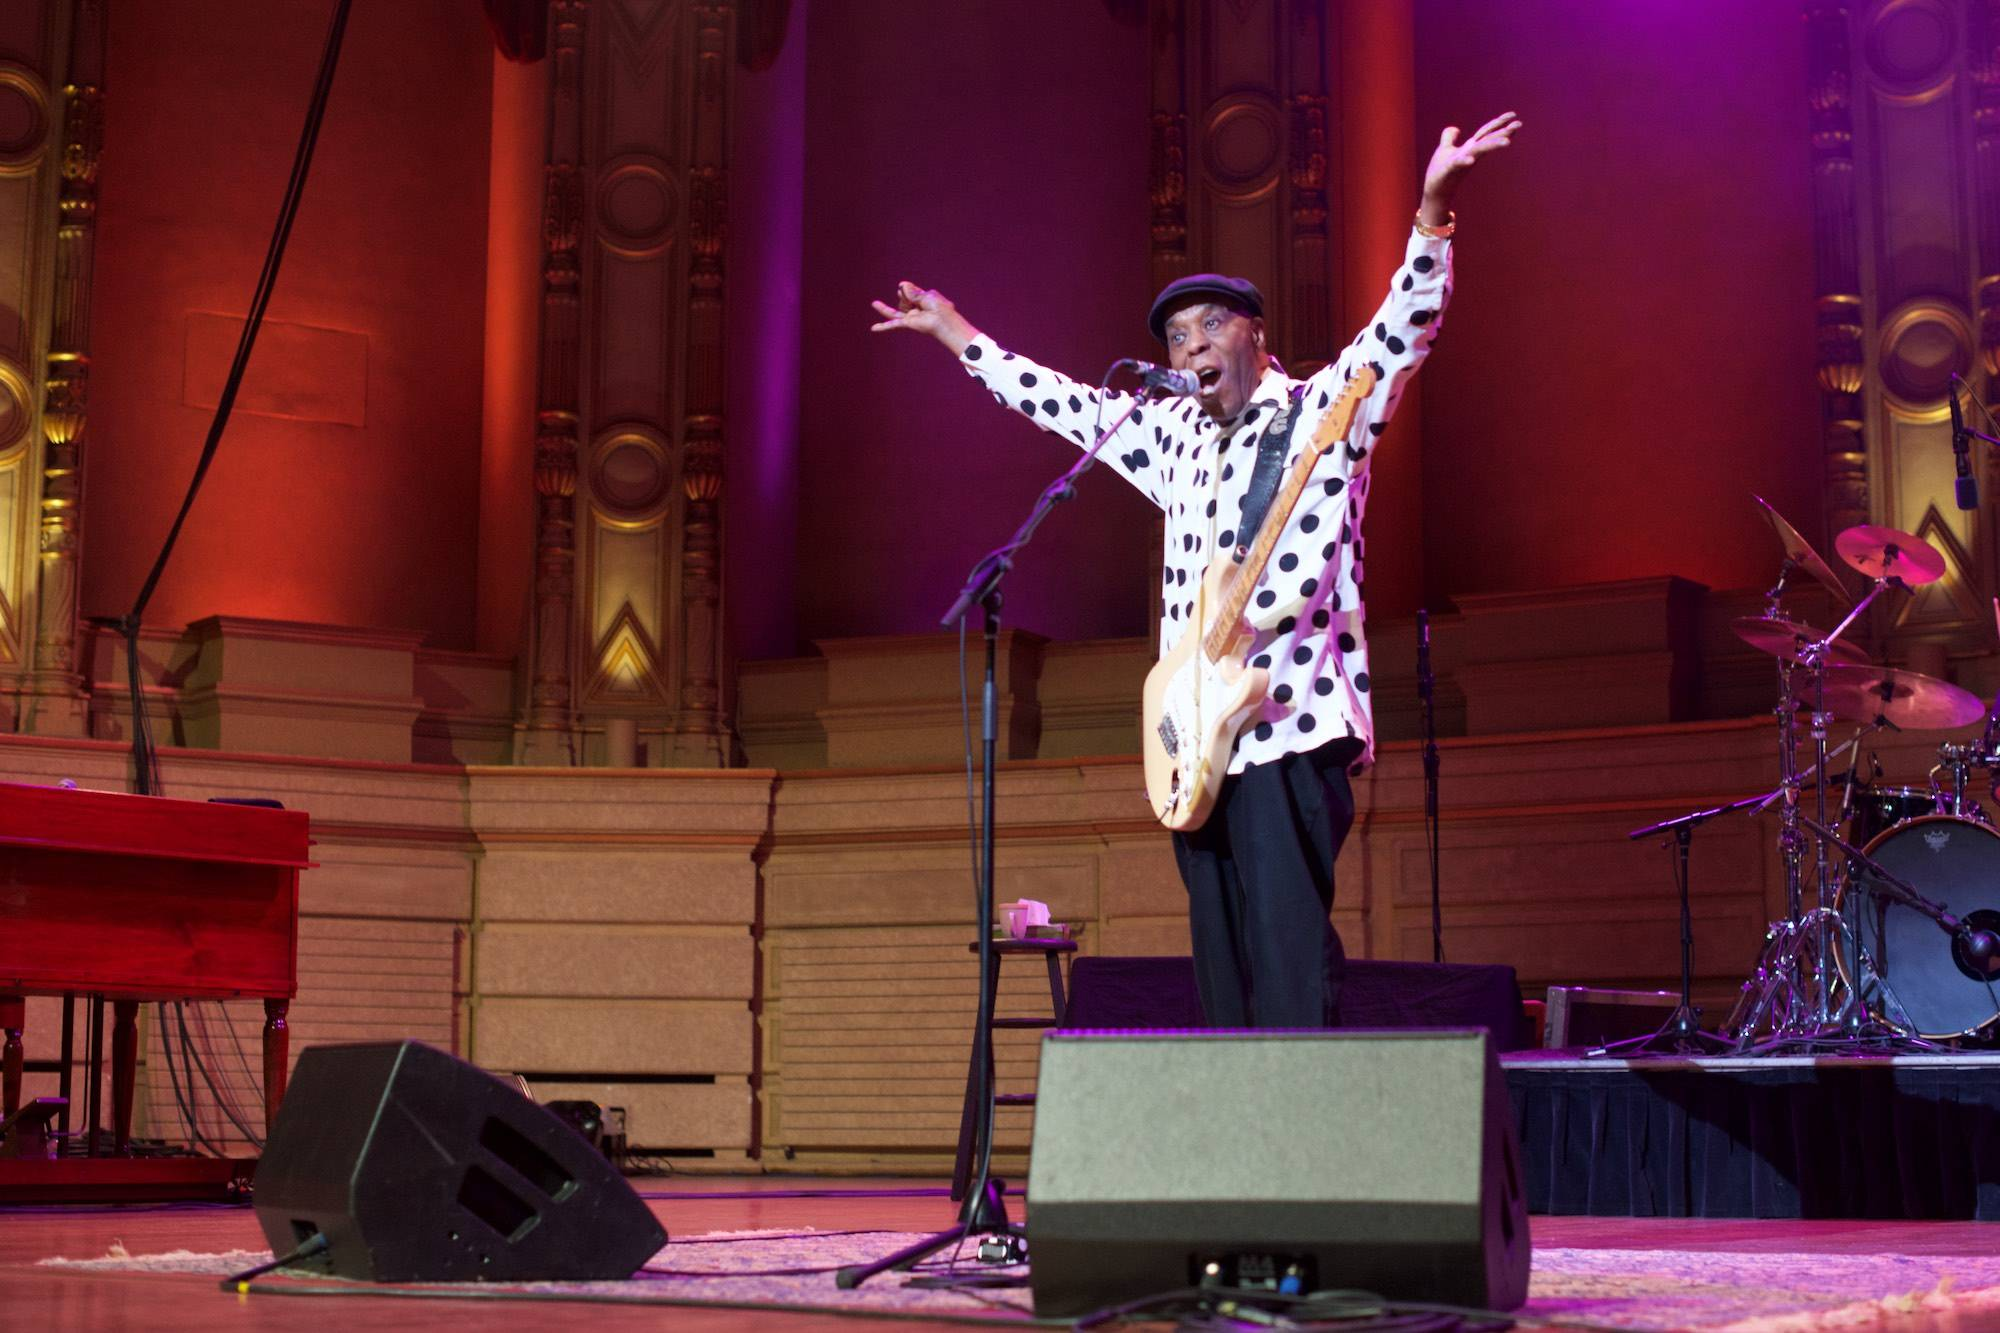 Buddy Guy at the Orpheum, Vancouver, Apr 22 2019. Scott Alexander photo.